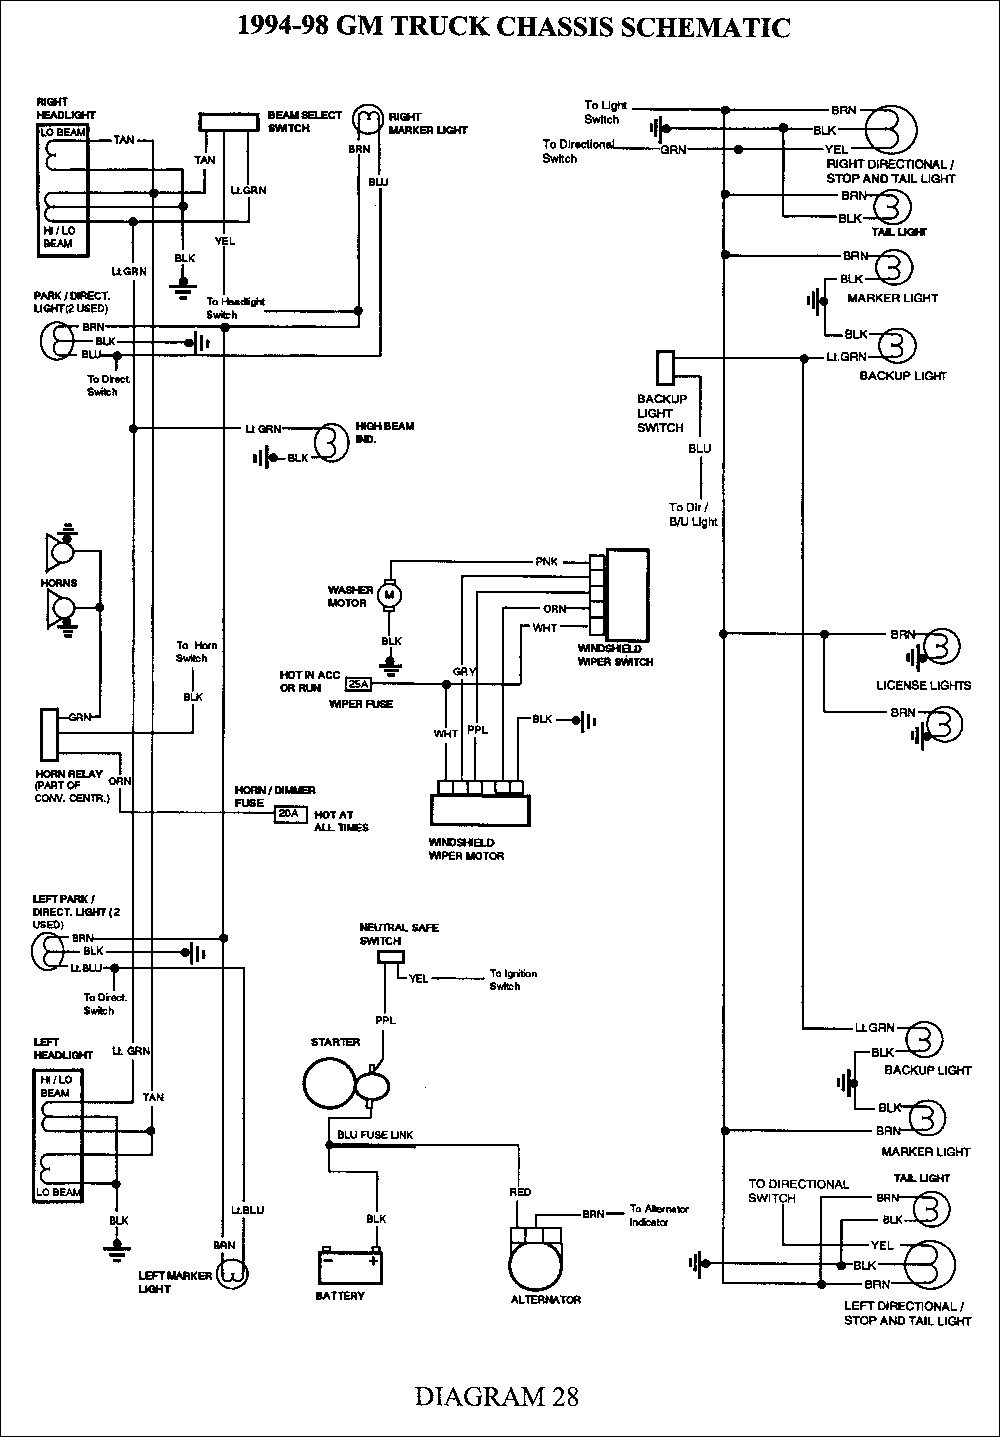 2002 Chevy Silverado Light Wiring Diagram